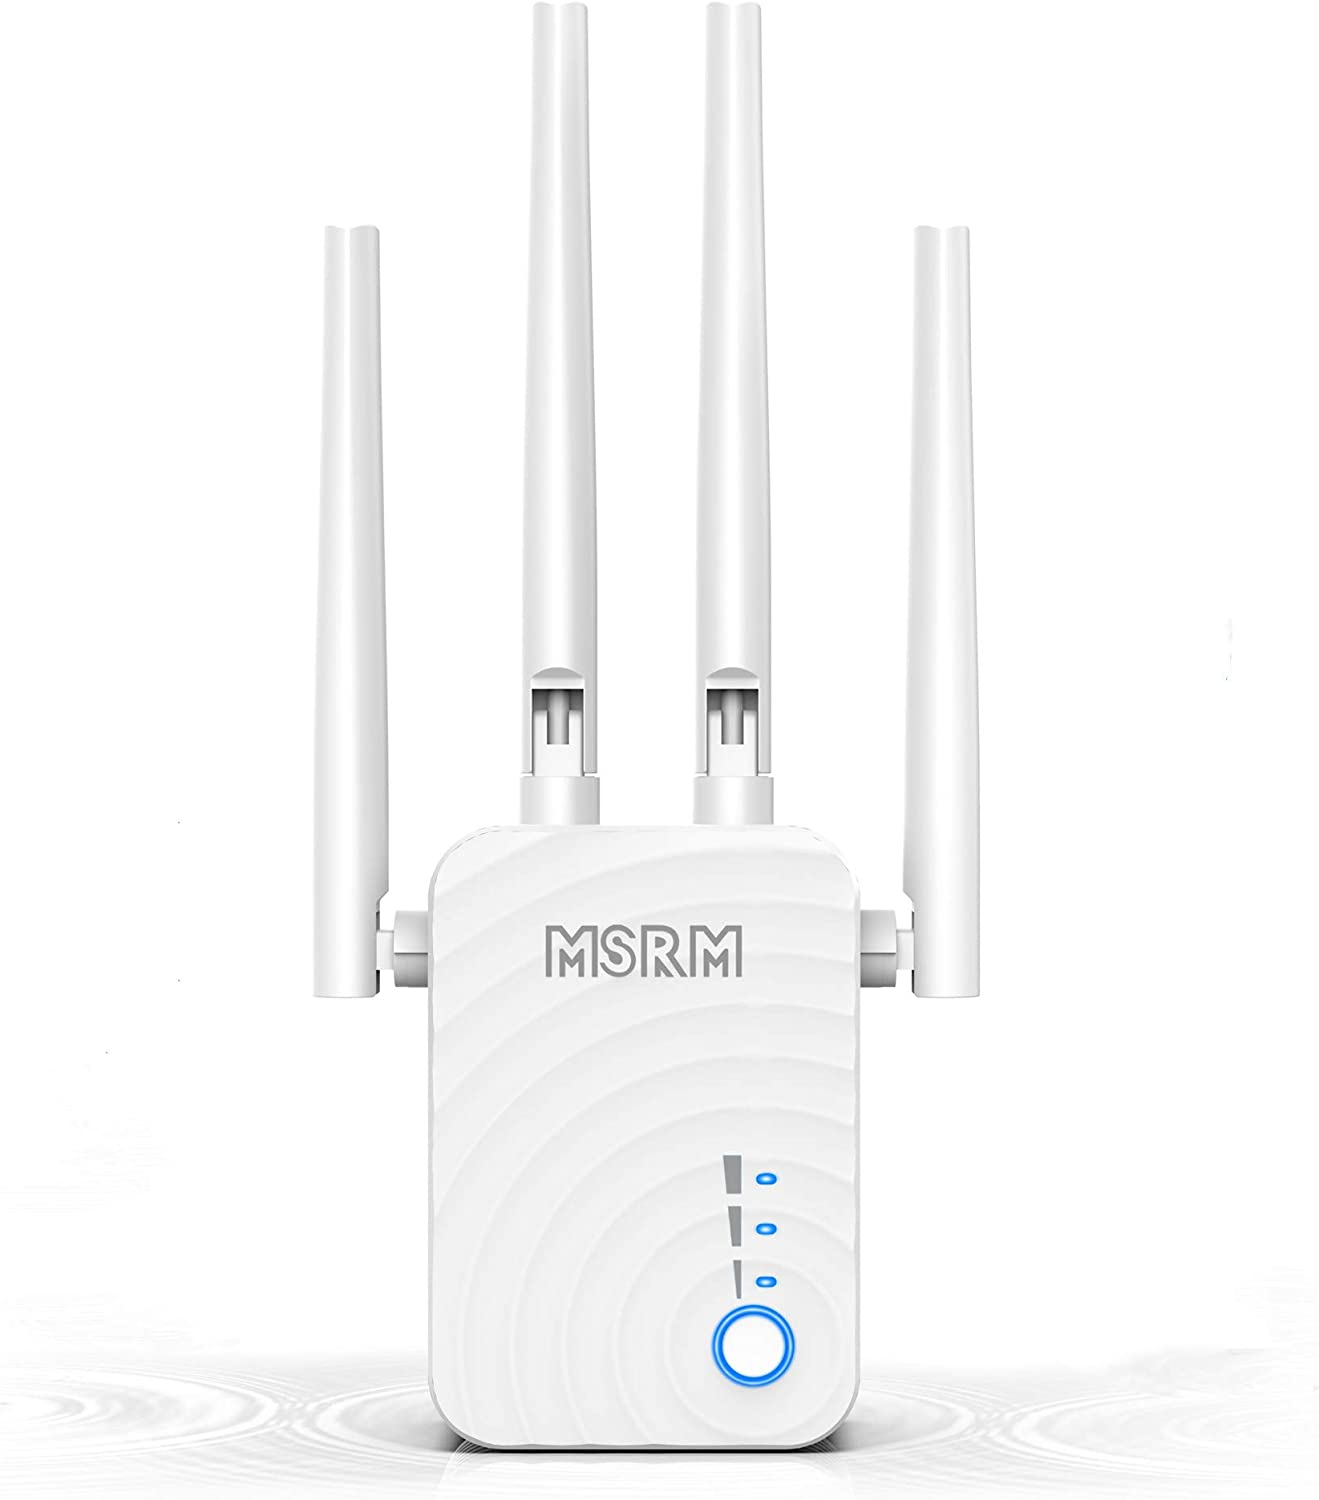 1200Mbps WiFi Range Extender, US754 Signal Amplifier Booster with 4 Band Antennas Complies 802.11a/b/n/g/ac WiFi Extender.